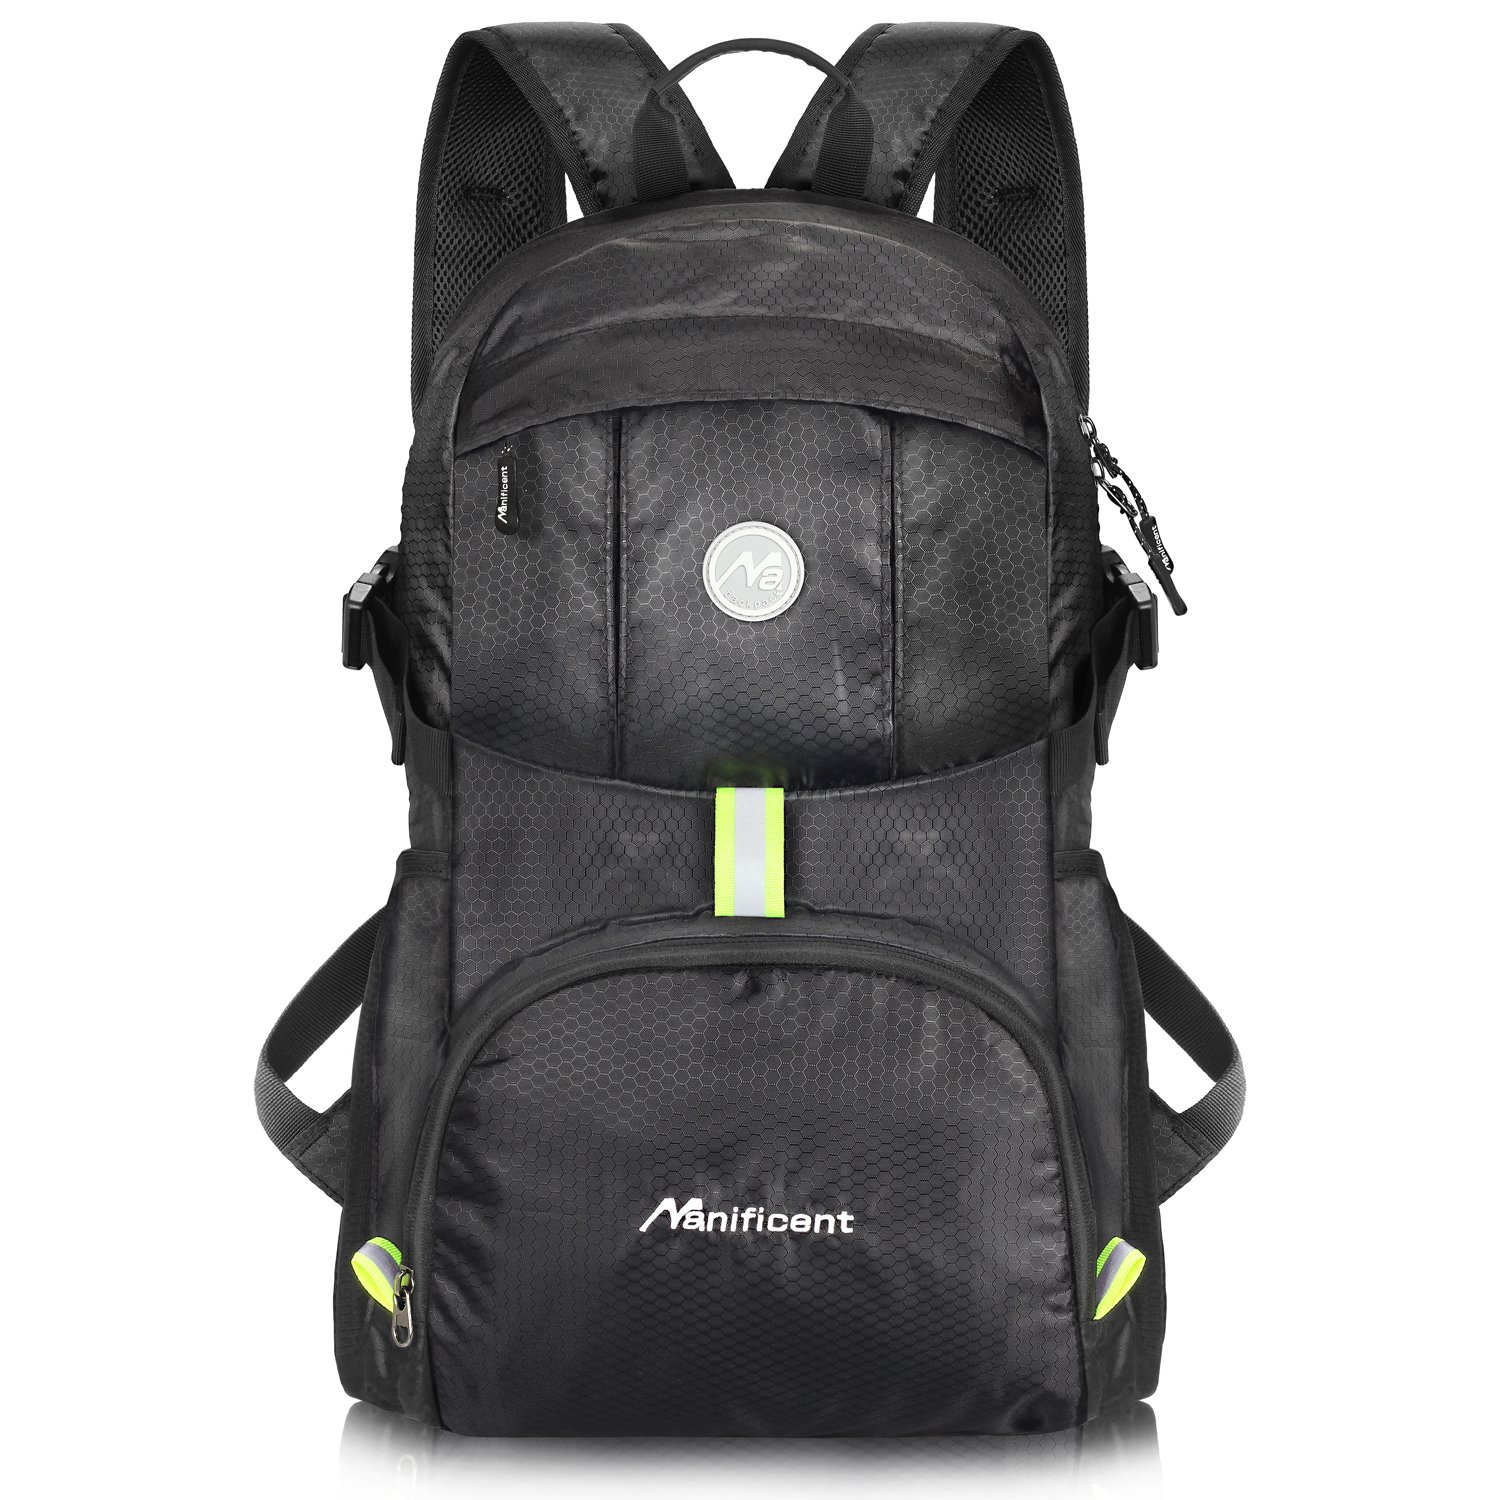 Manificent Lightweight Packable Travel Hiking Backpack, Durable Daypack, Water Resistance Foldable Camping Outdoor Sport Backpack, Black by Manificent